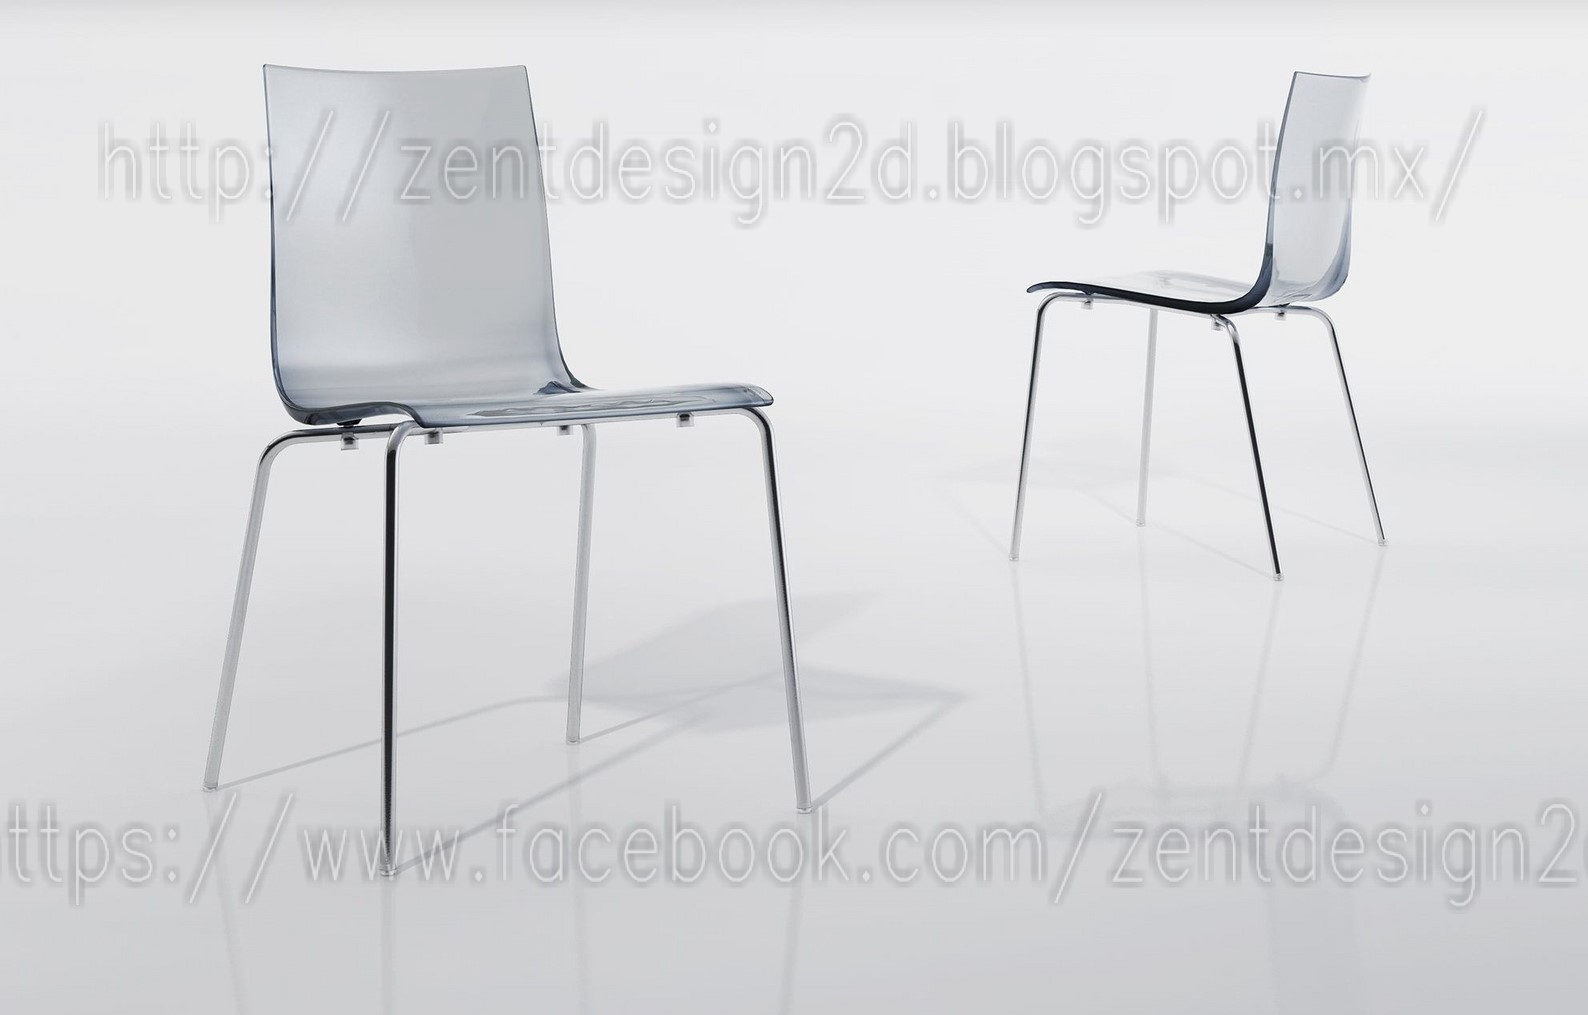 Chair Design Sketchup Simply Bows And Covers Harrogate Viz 1 Zent 2d